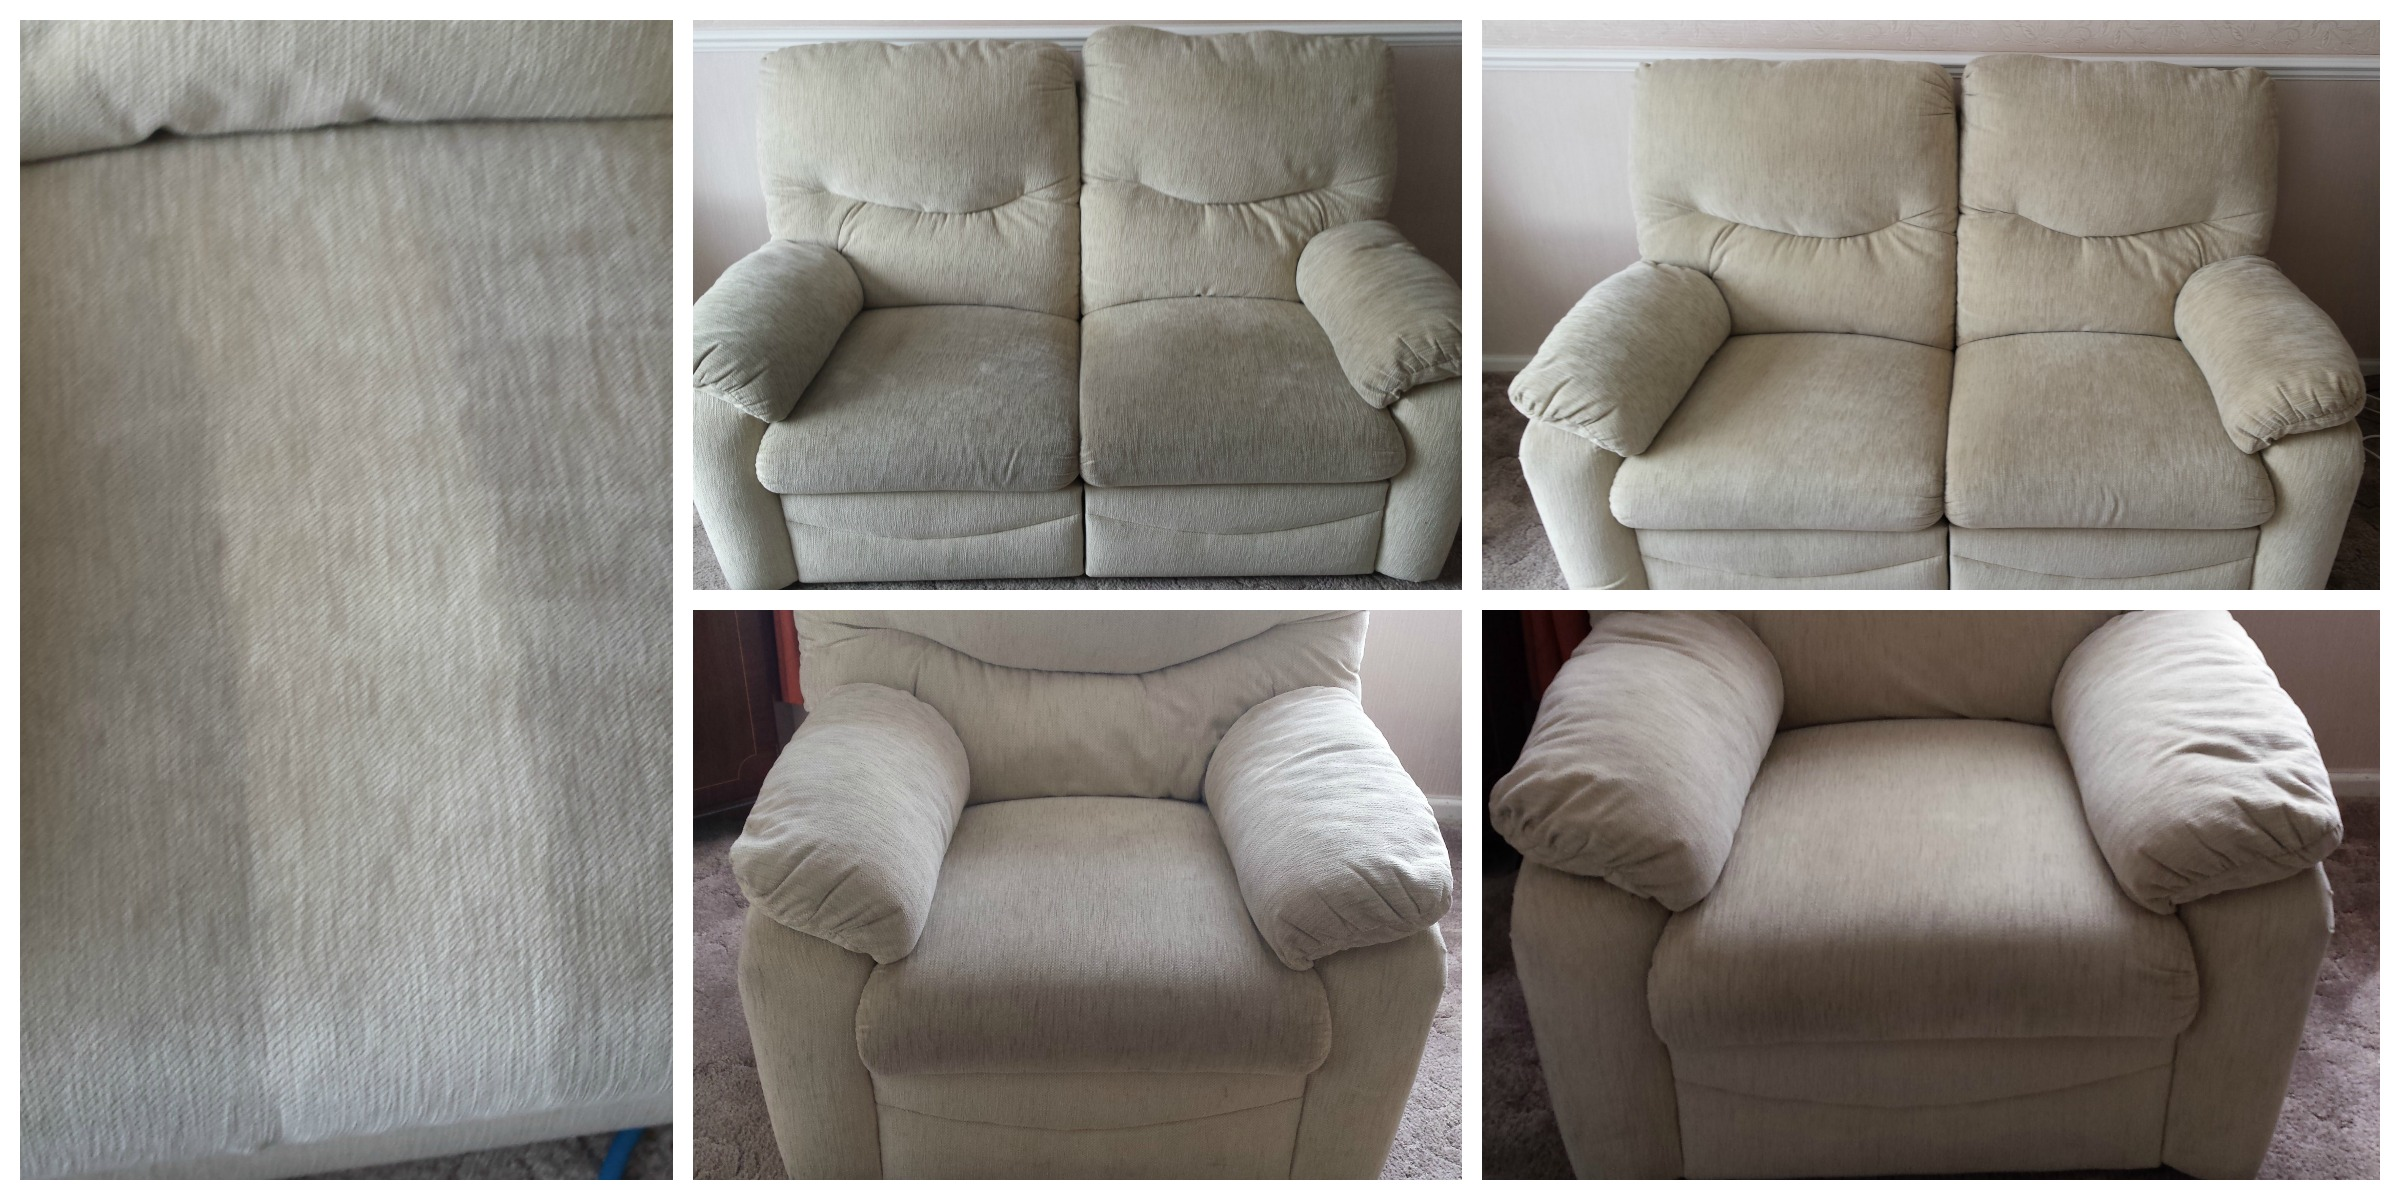 Upholstery cleaning in Luton Bedfordshire from www.fivestarfurnishingcare.co.uk